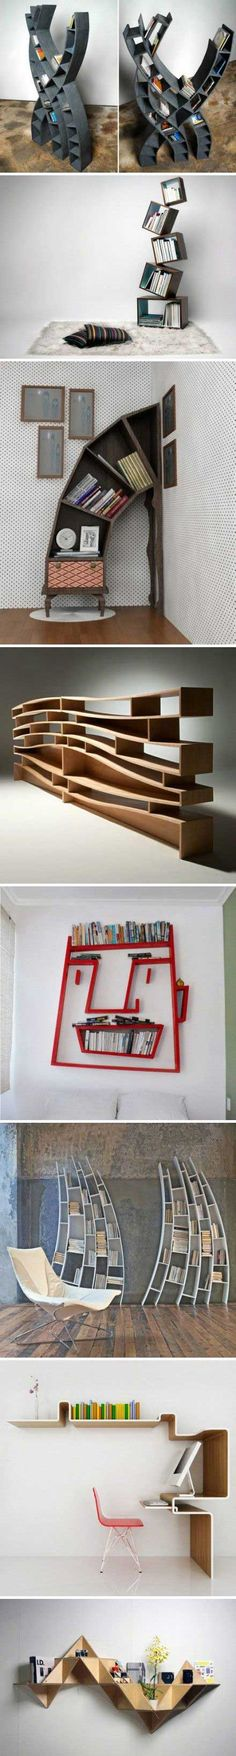 Unique DIY Book Shelves Ideas - All Natural & Good